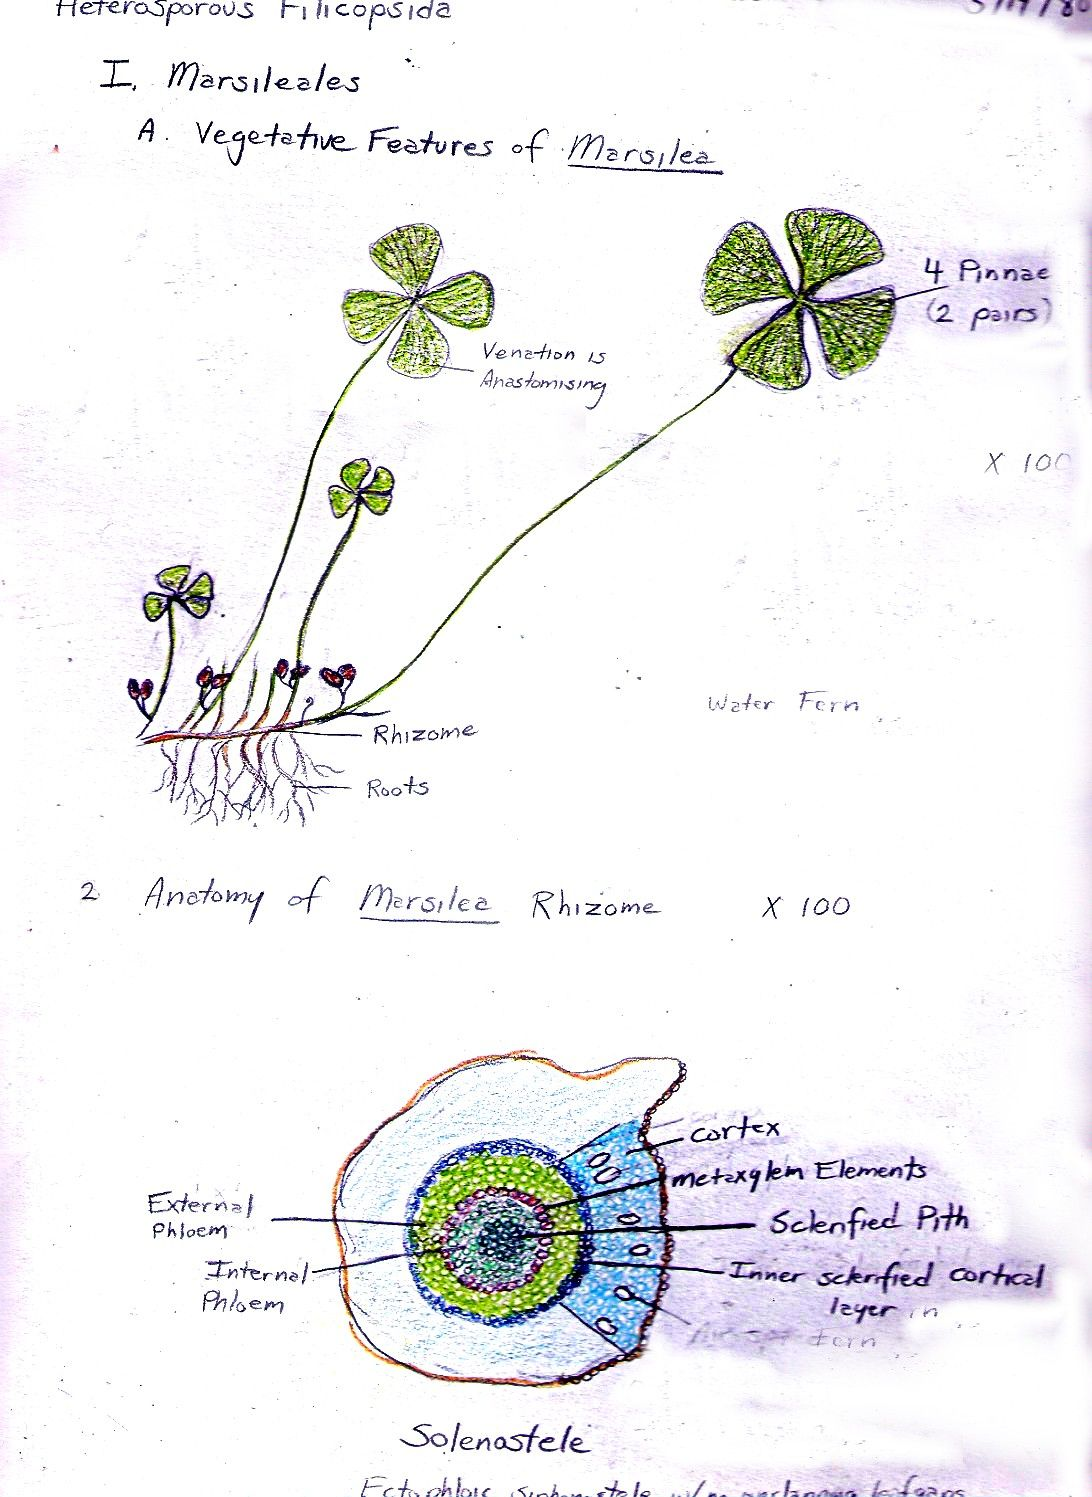 Marsilea or water fern vegetative features and rhizome anatomy ...